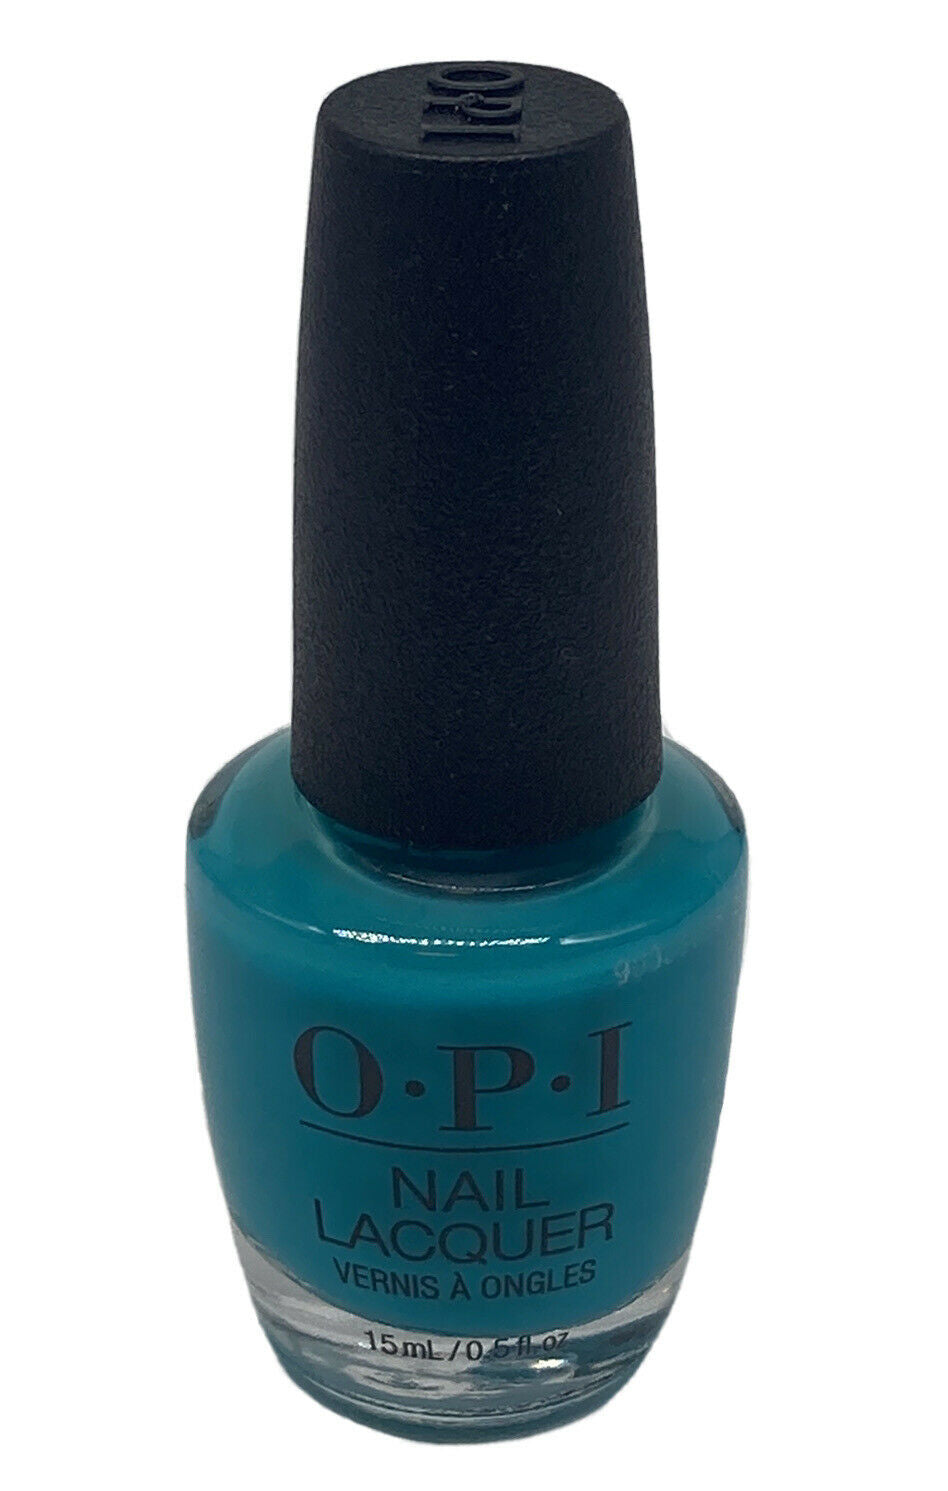 O.P.I NAIL LACQUER 'DANCE PARTY TEAL DOWN' 15ml